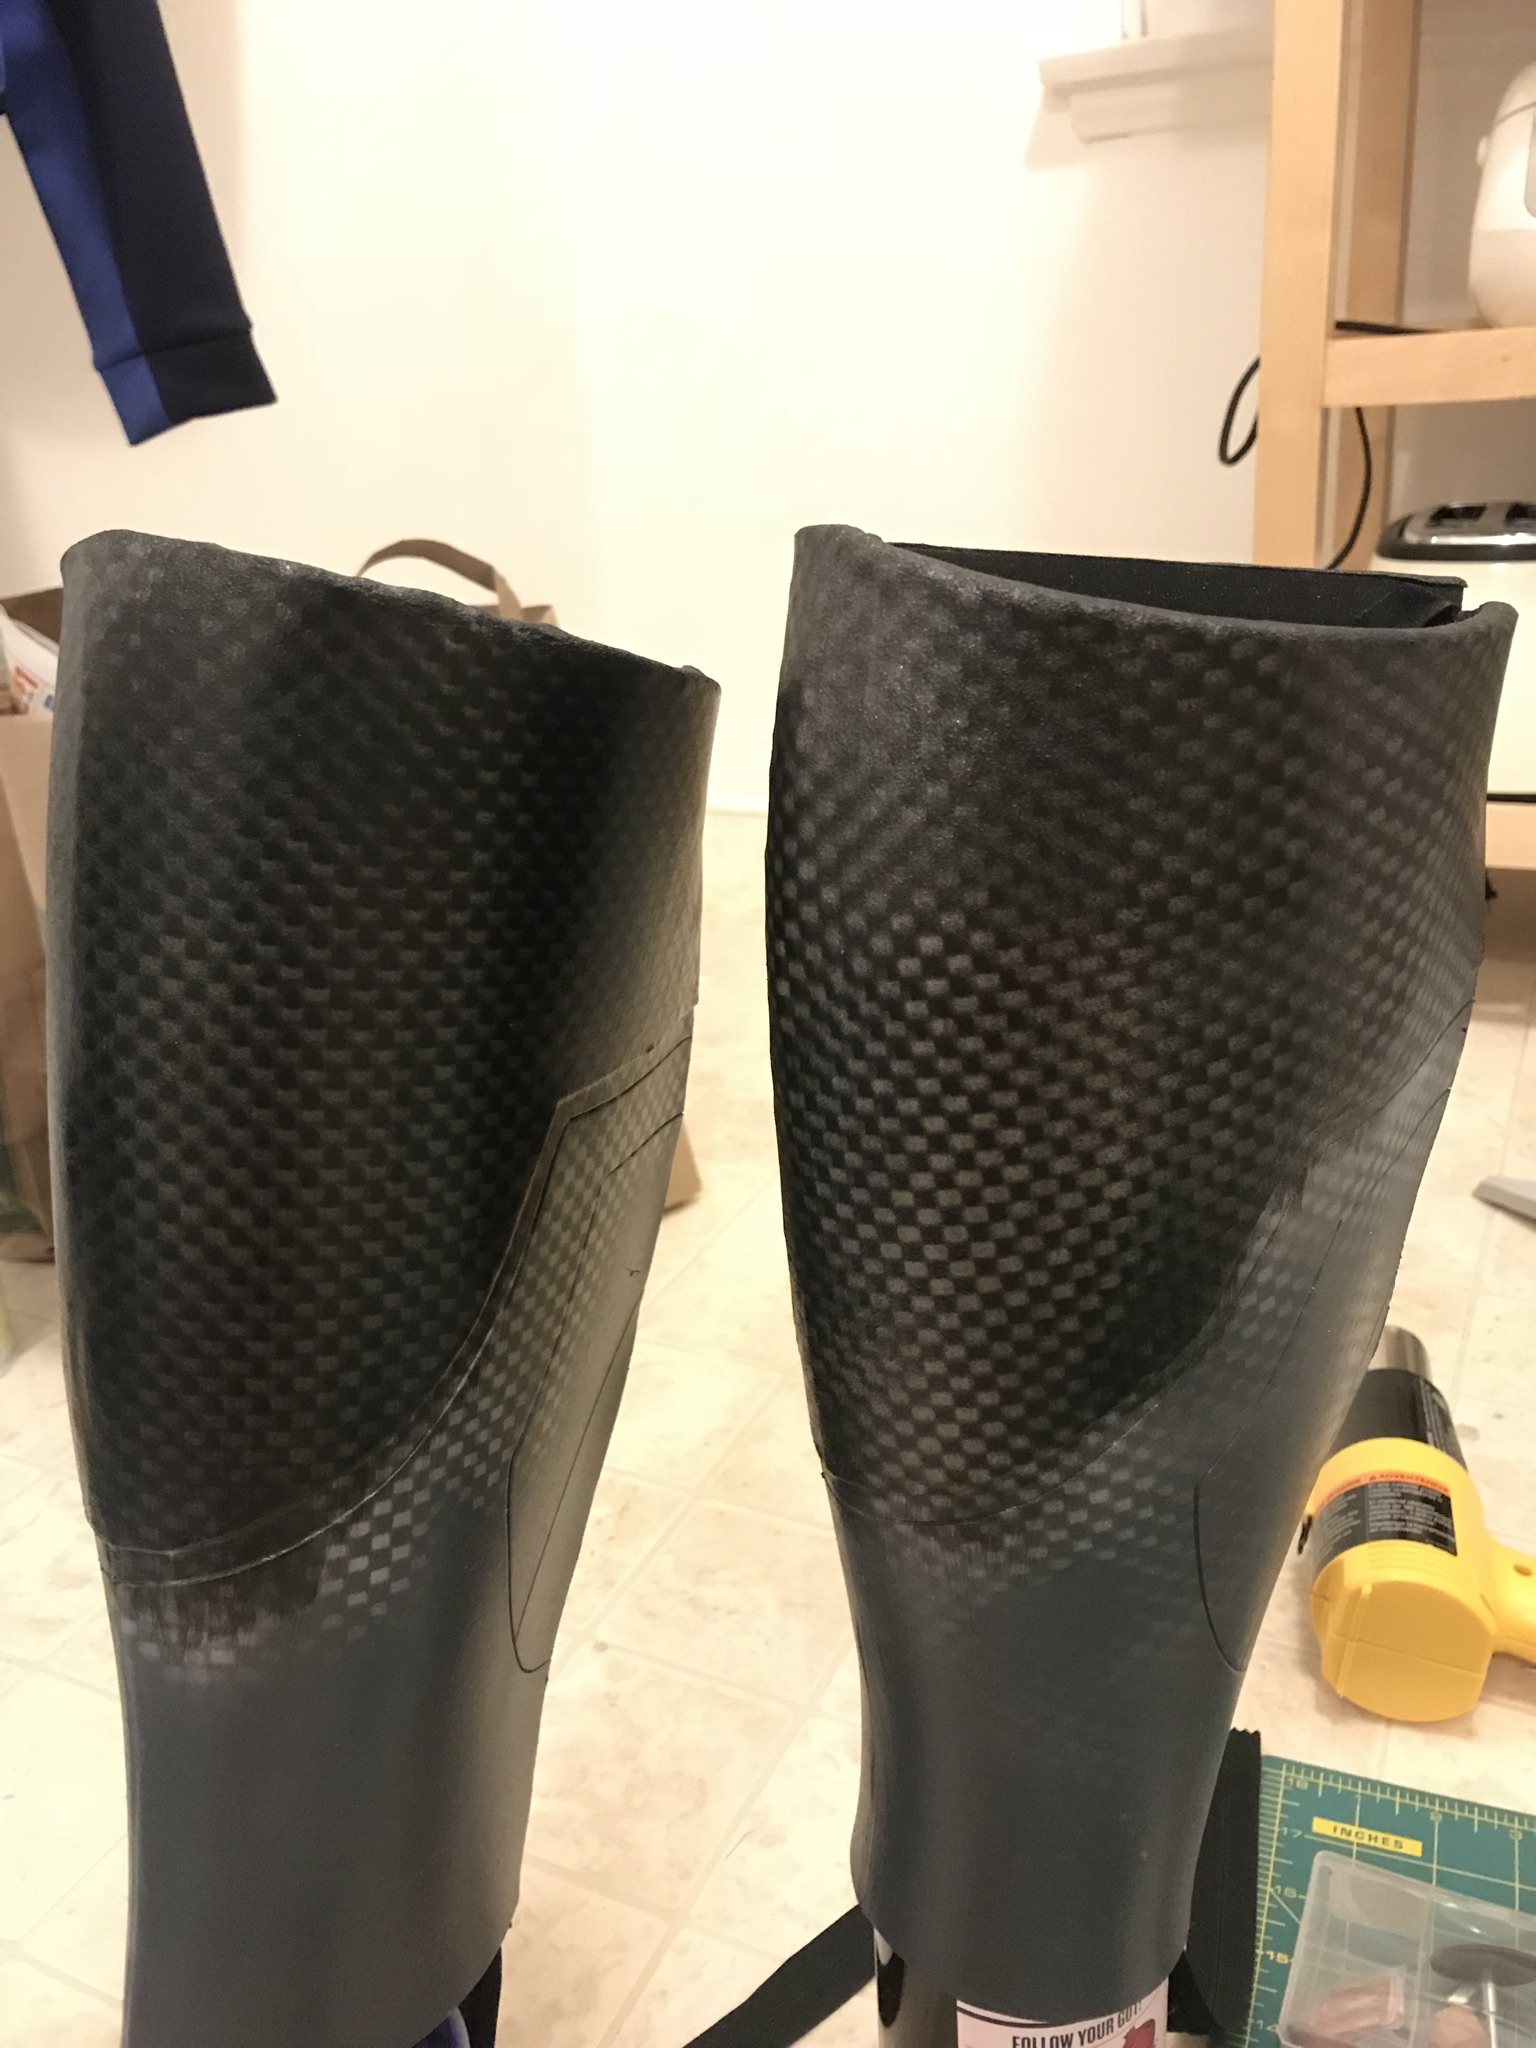 I was going to use carbon fiber vinyl for the tops of these, but I had issues with it not applying very well, so I just sprayed the pattern on using a rug mat.